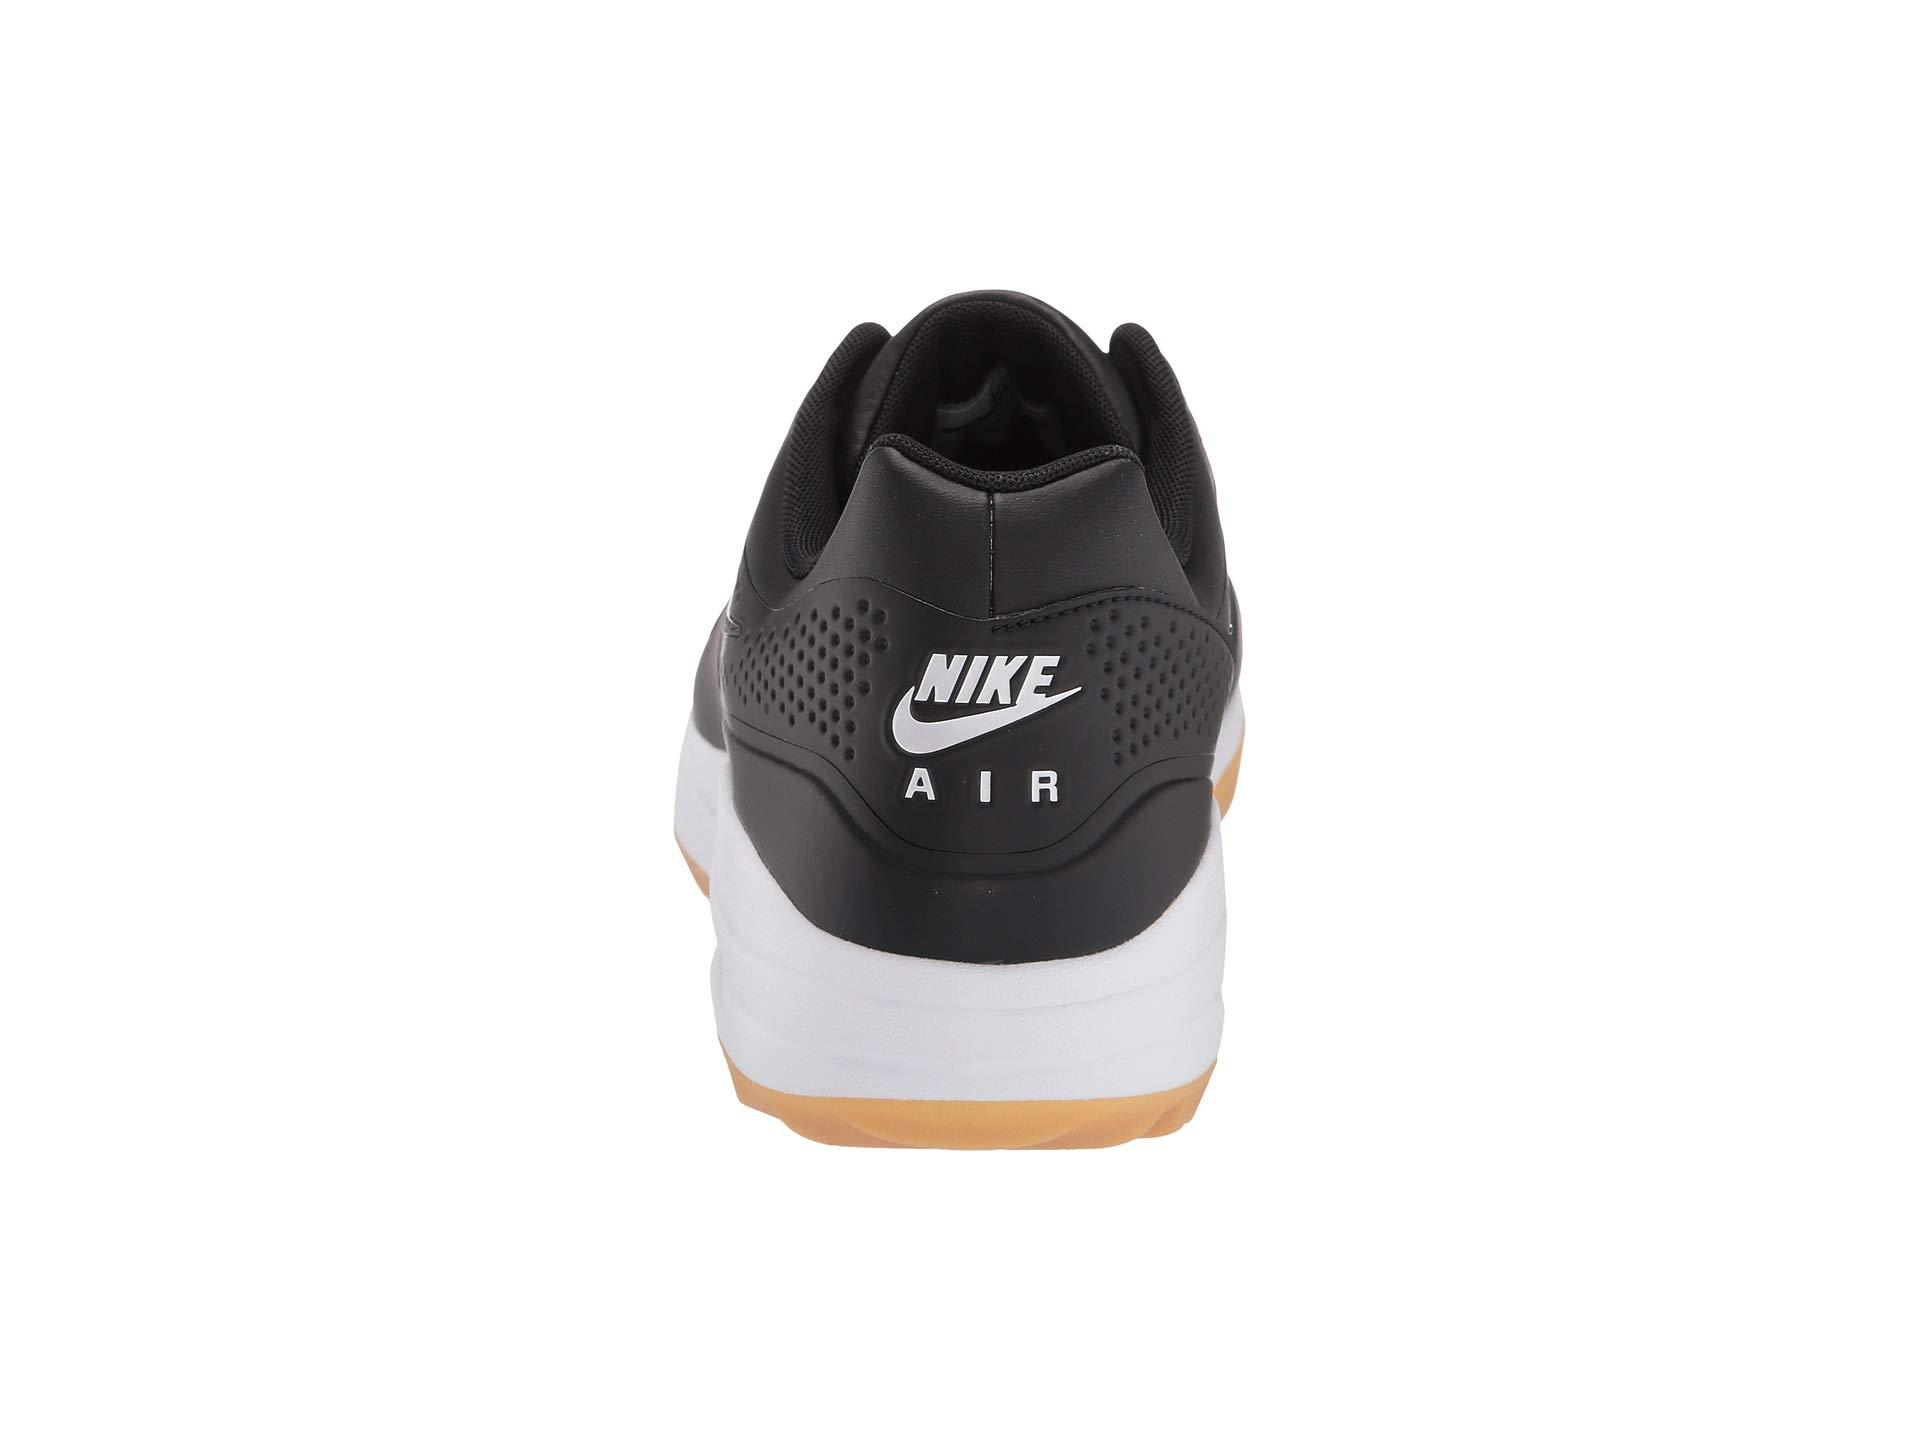 Nike Air Max 1g Faux Leather And Rubber Golf Shoes In Black For Men Lyst